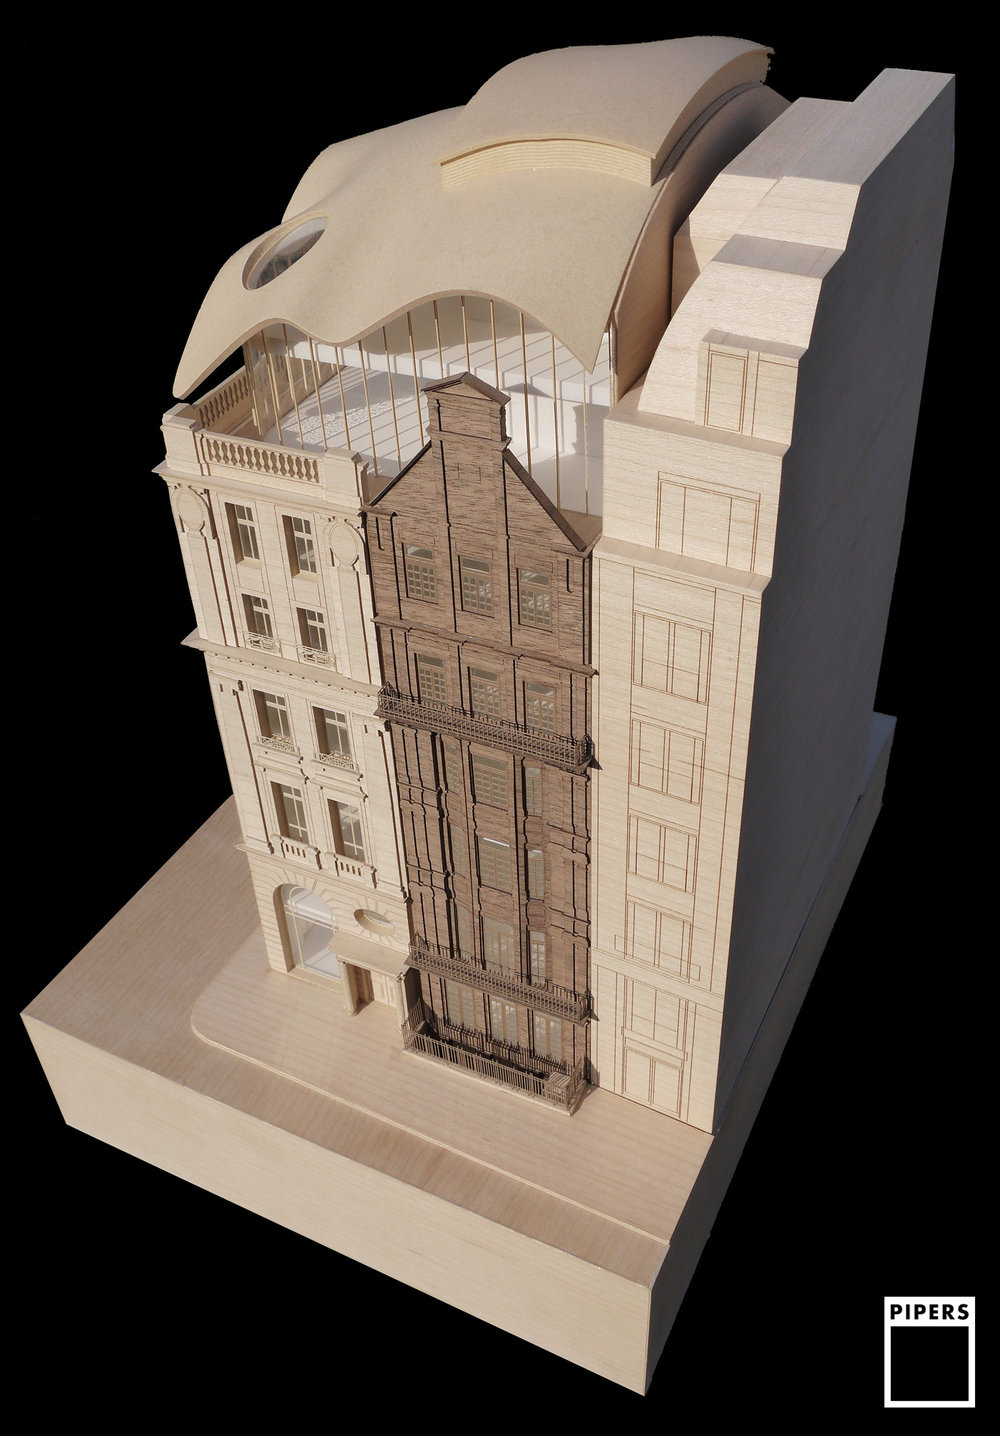 39 saint james square architecture facade timber model